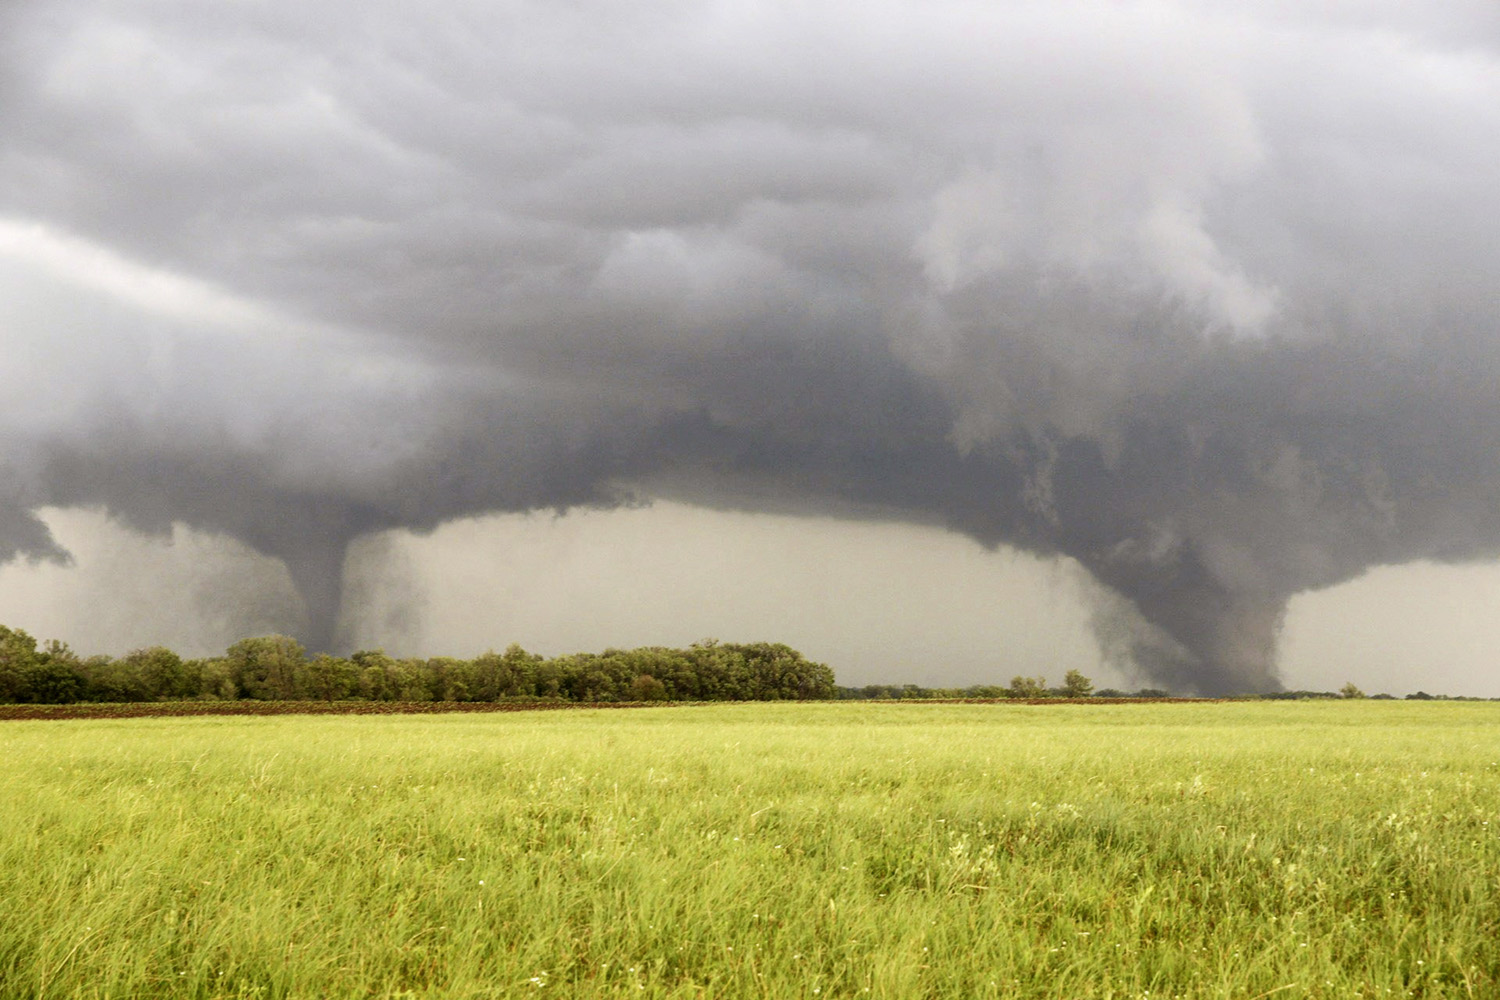 A pair of tornadoes barrel toward Pilger, Neb., on June 16. The twisters uprooted trees and flattened houses across the tiny village (pop. 352). Two residents, including a 5-year-old girl, died as a result of the storm.